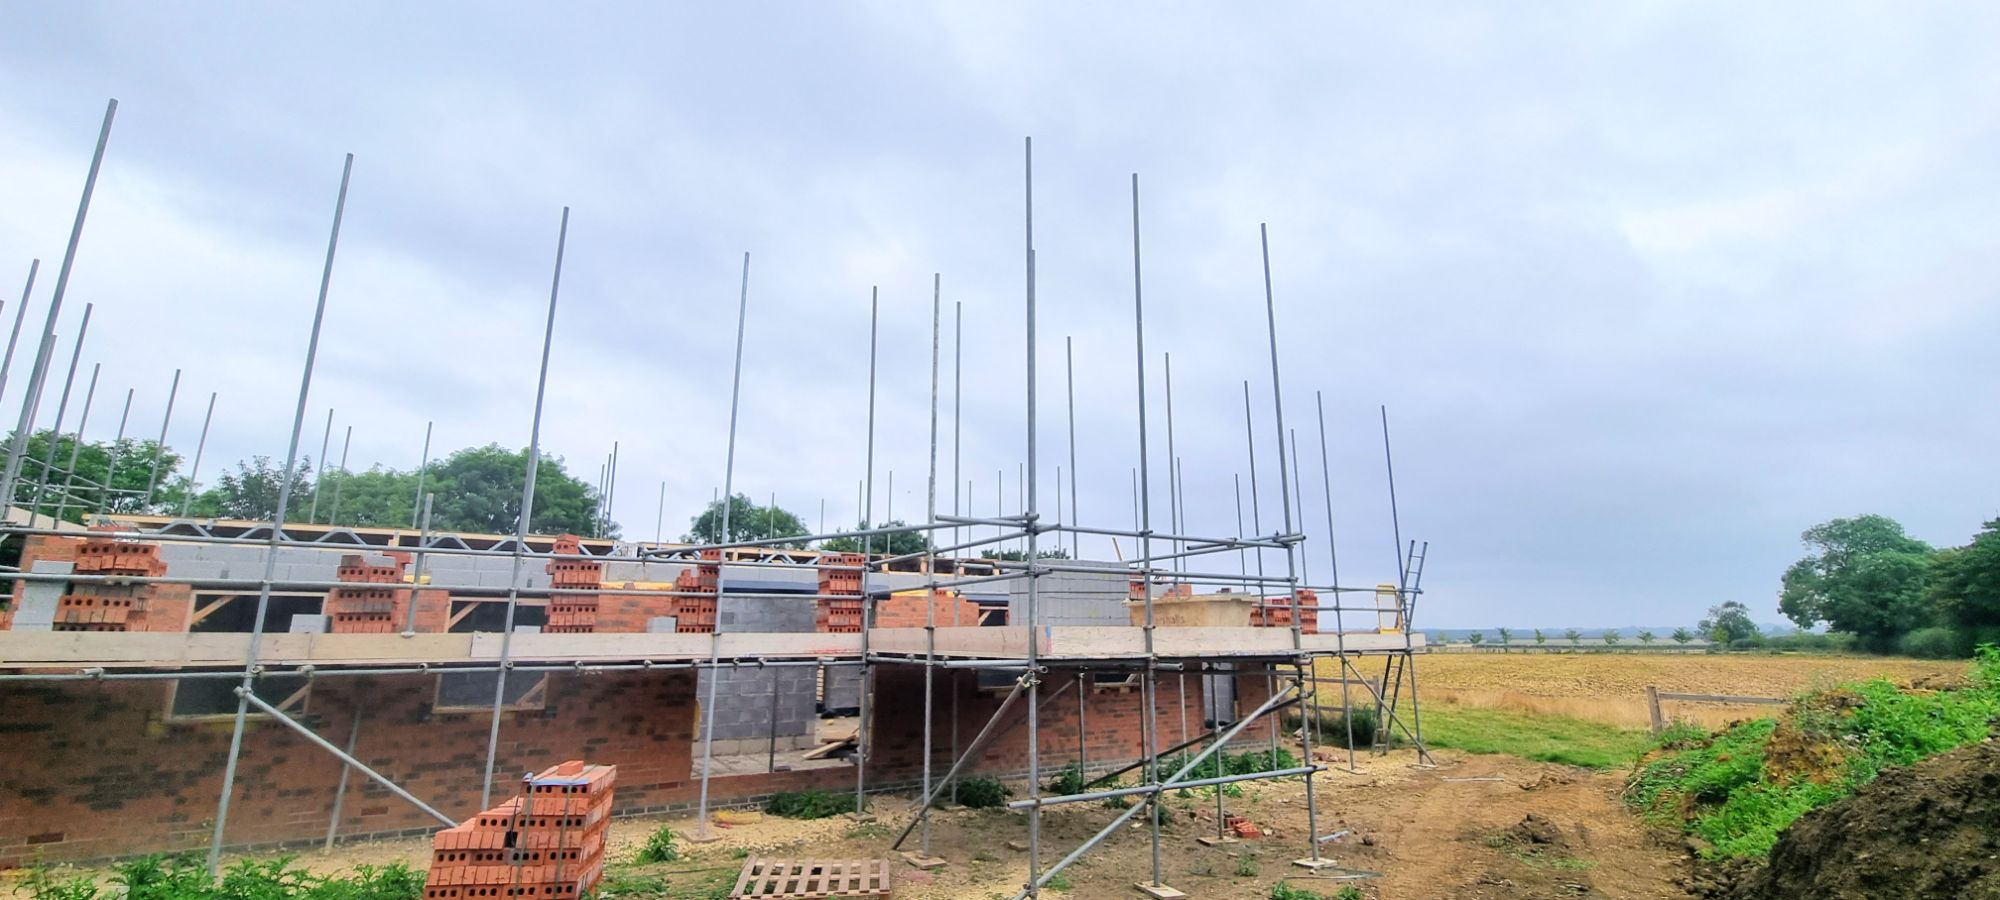 View current development opportunities - subject to availability Fytche-Taylor Planning offer sell self-build plots and land with planning permission – check regularly to see our latest sites